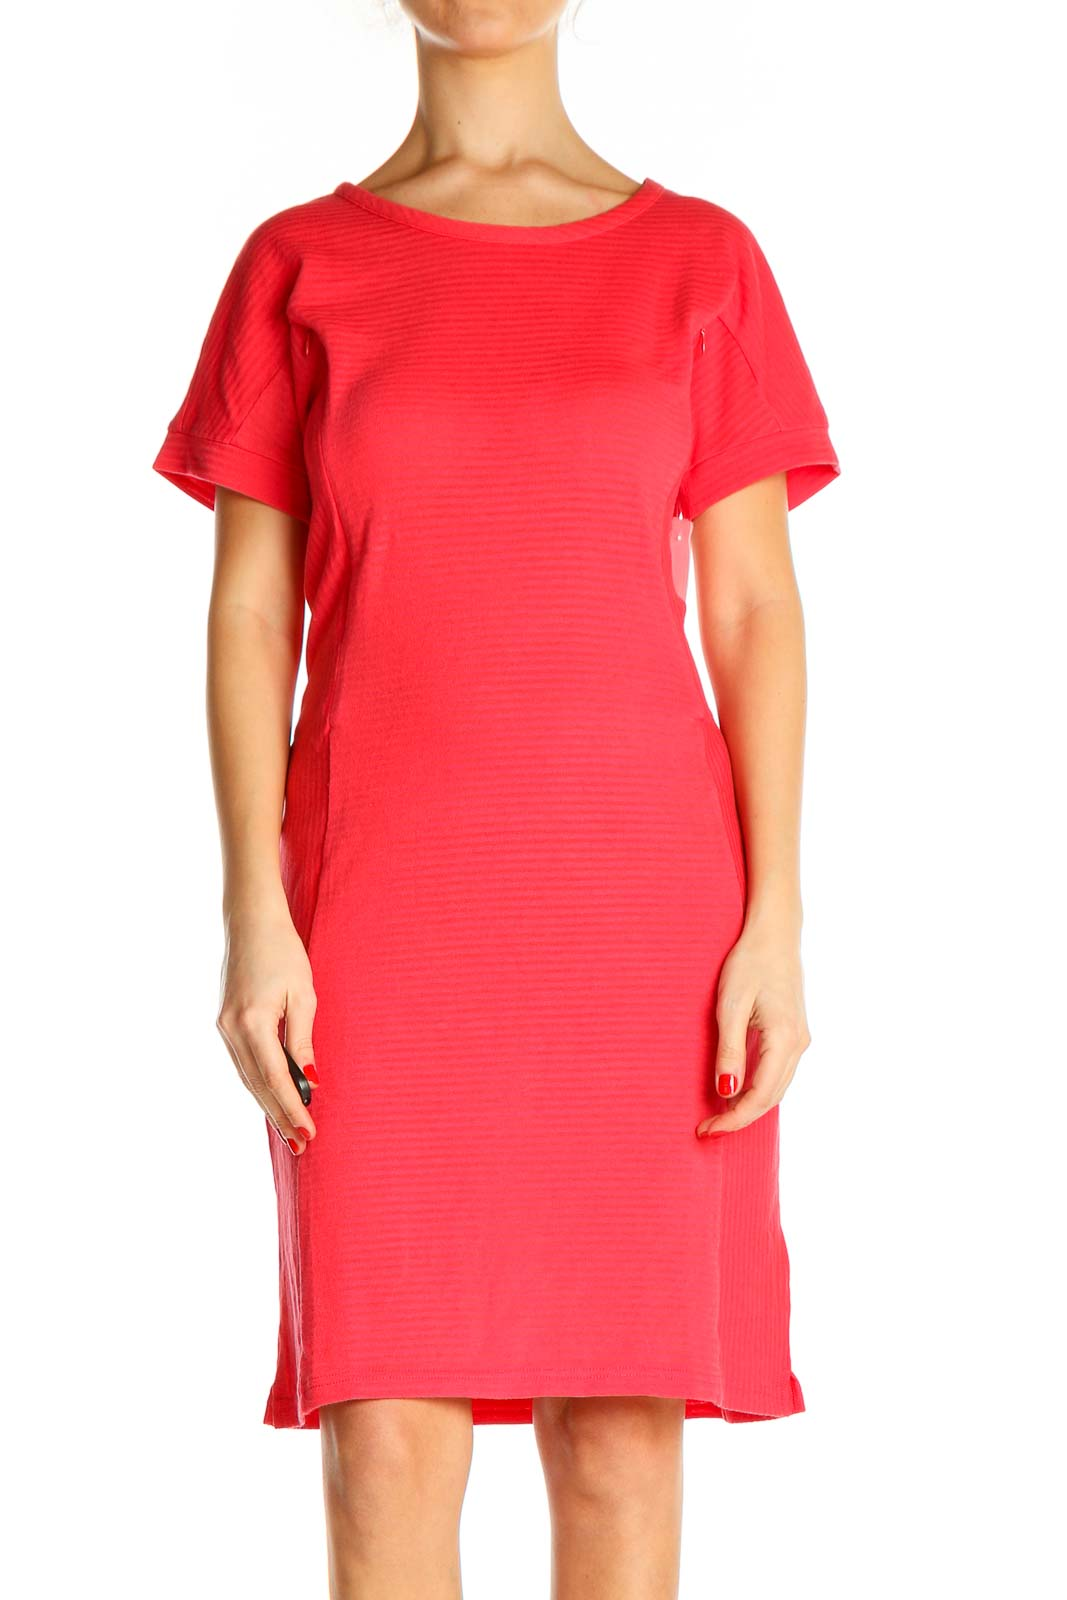 Pink Solid Classic Sheath Dress Front